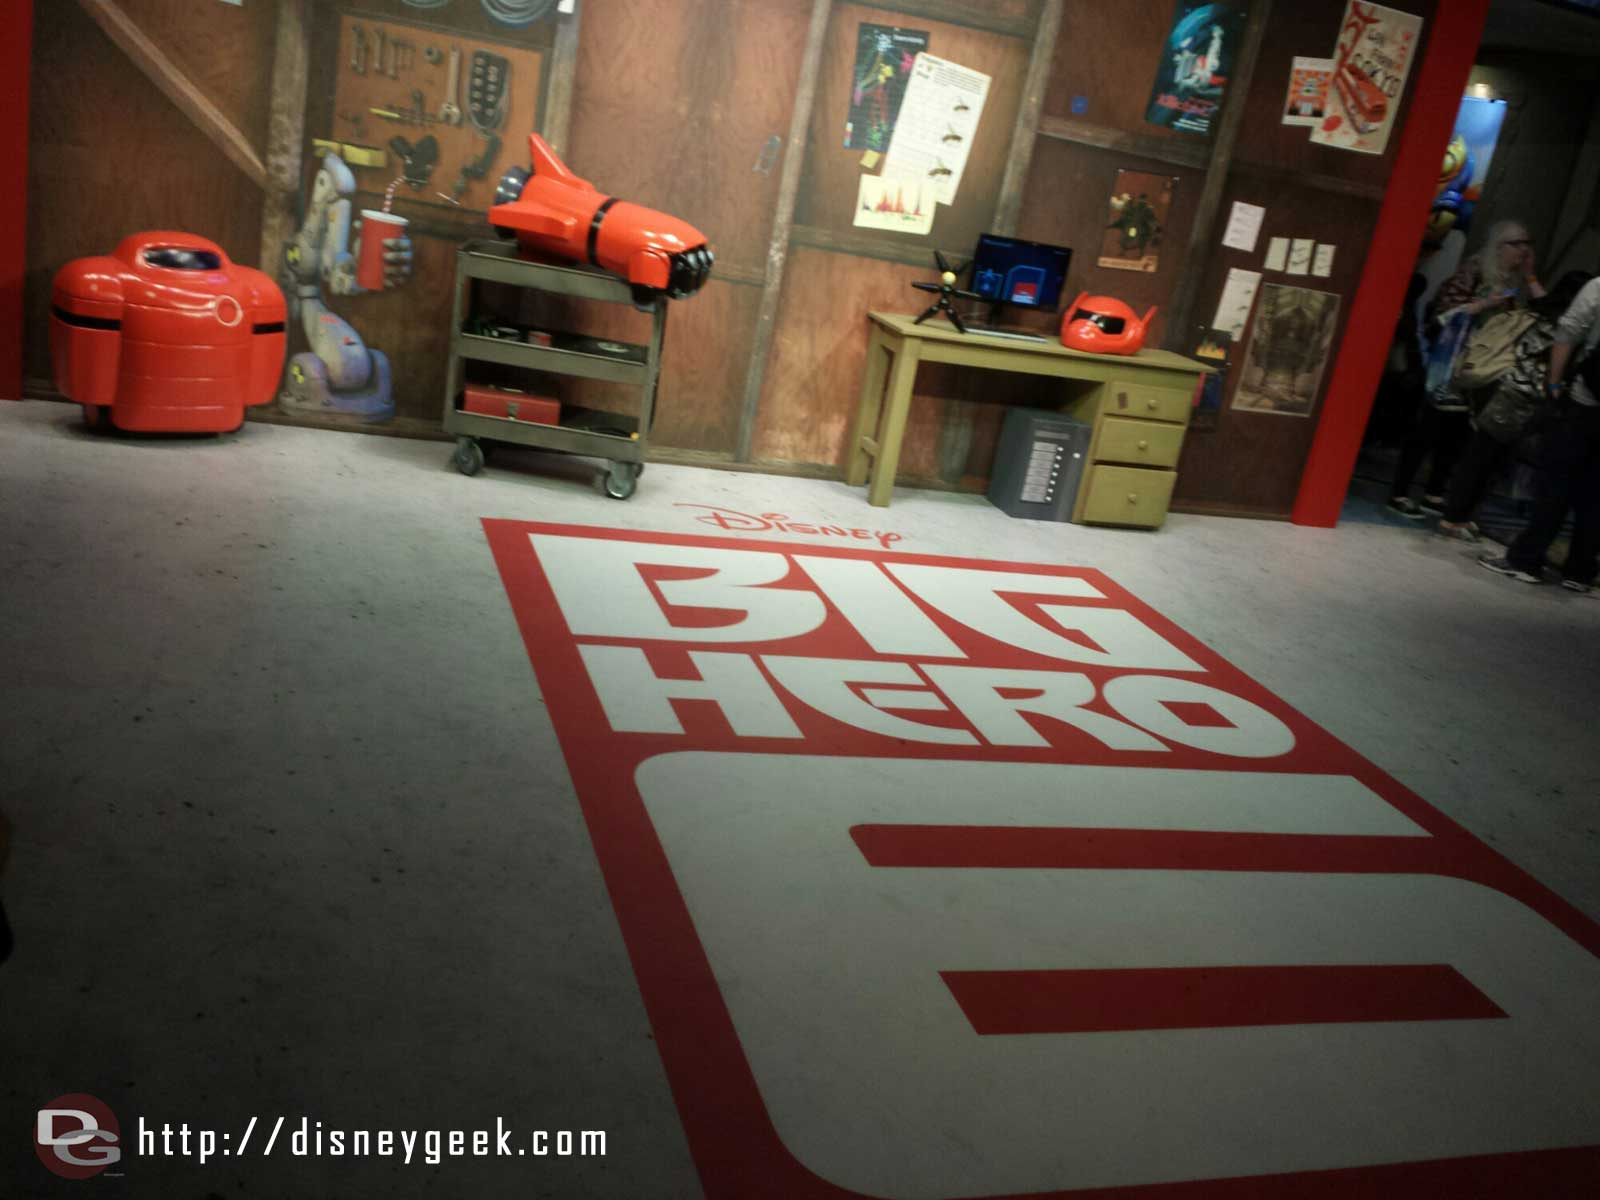 #BigHero6 Meet and Greet area in Disney's Hollywood Studios